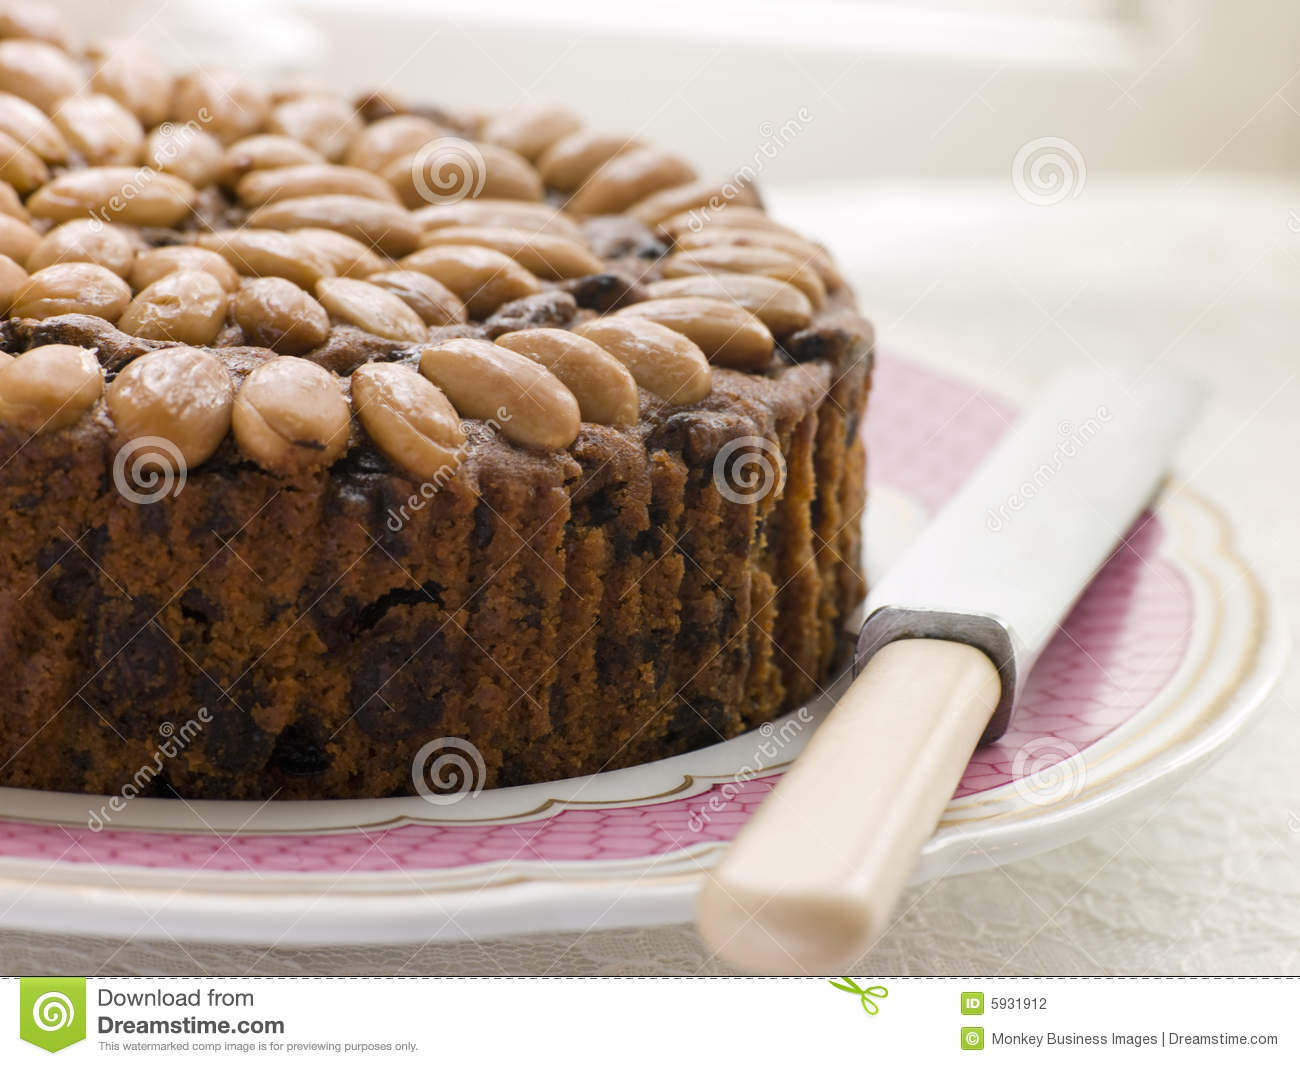 Dundee Cake Clip Art : Dundee Cake On A Plate Stock Photography - Image: 5931912